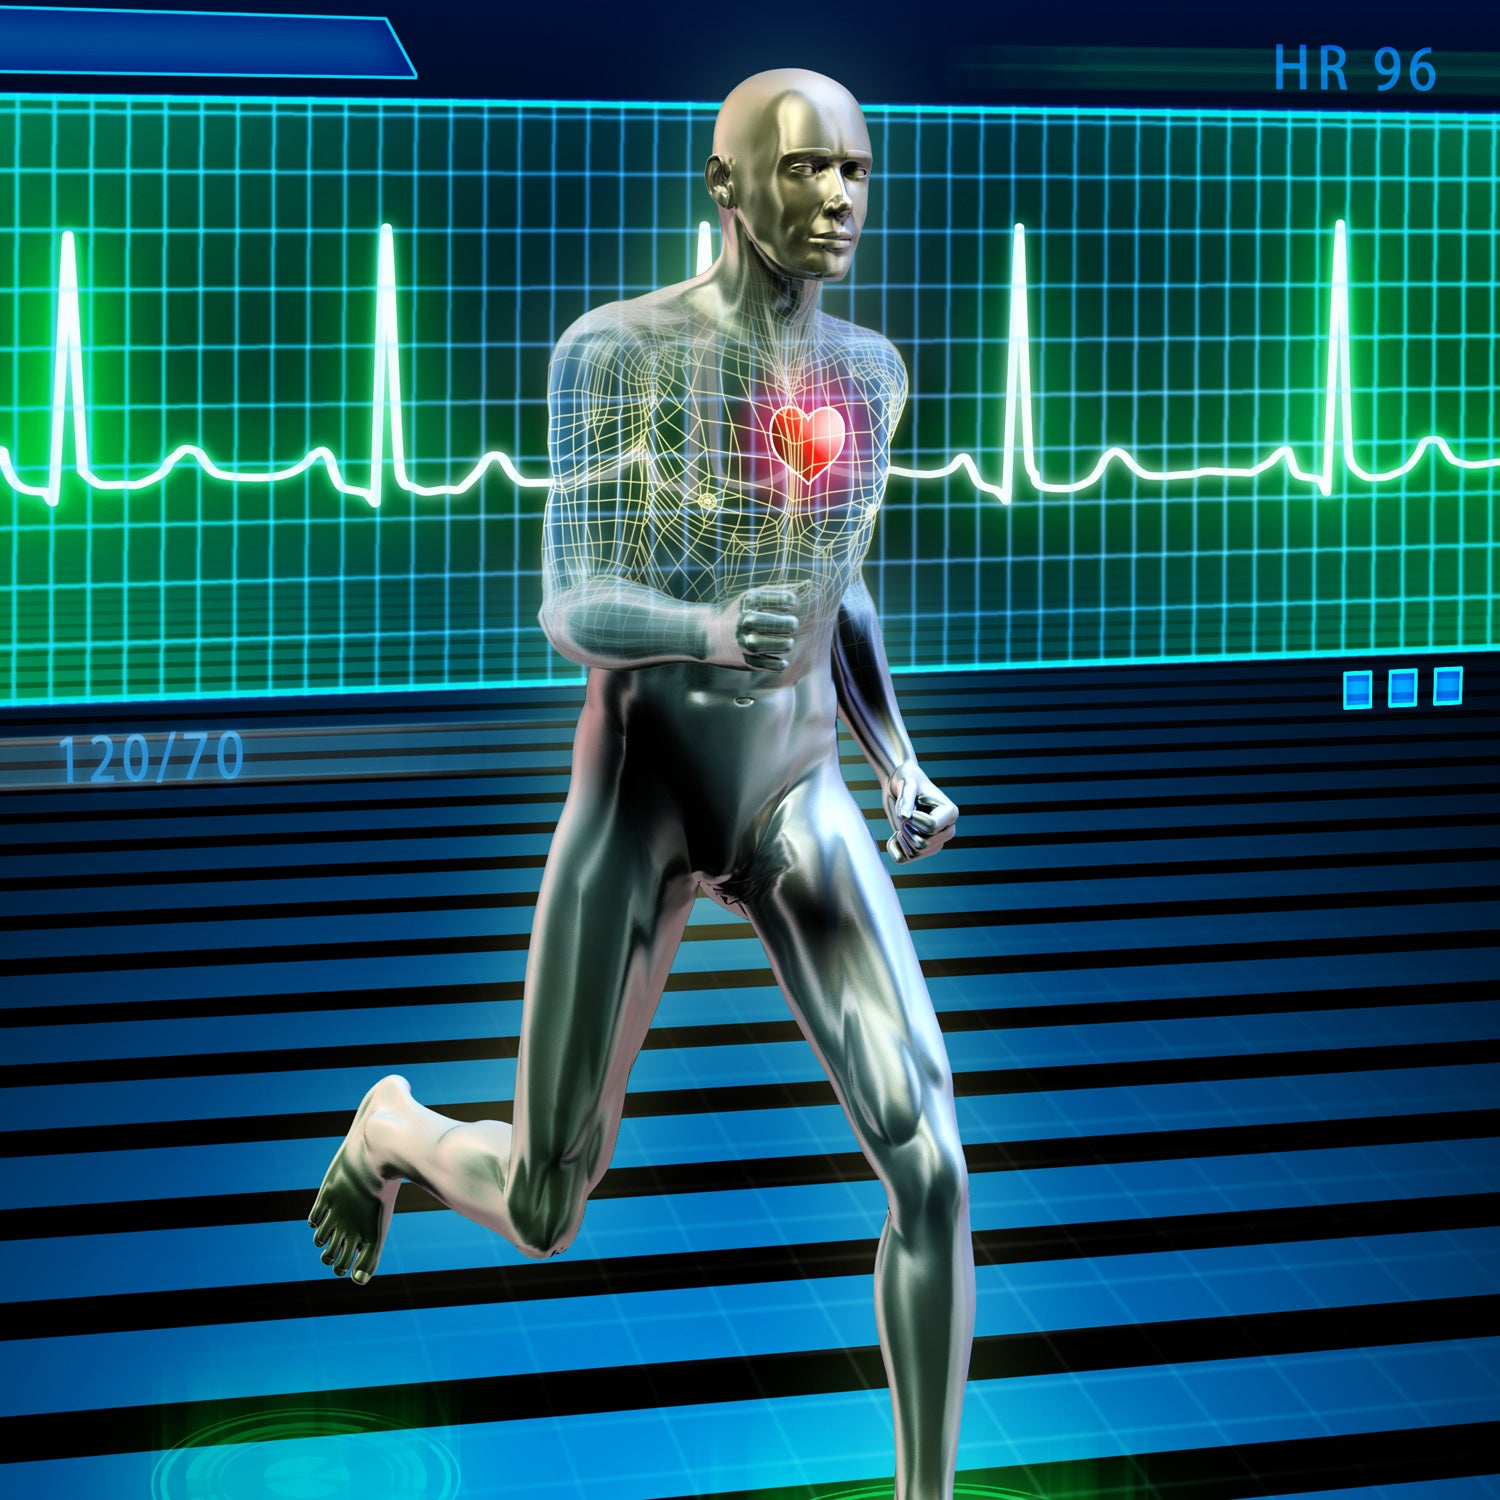 How To Train To Heart Rate Effectively